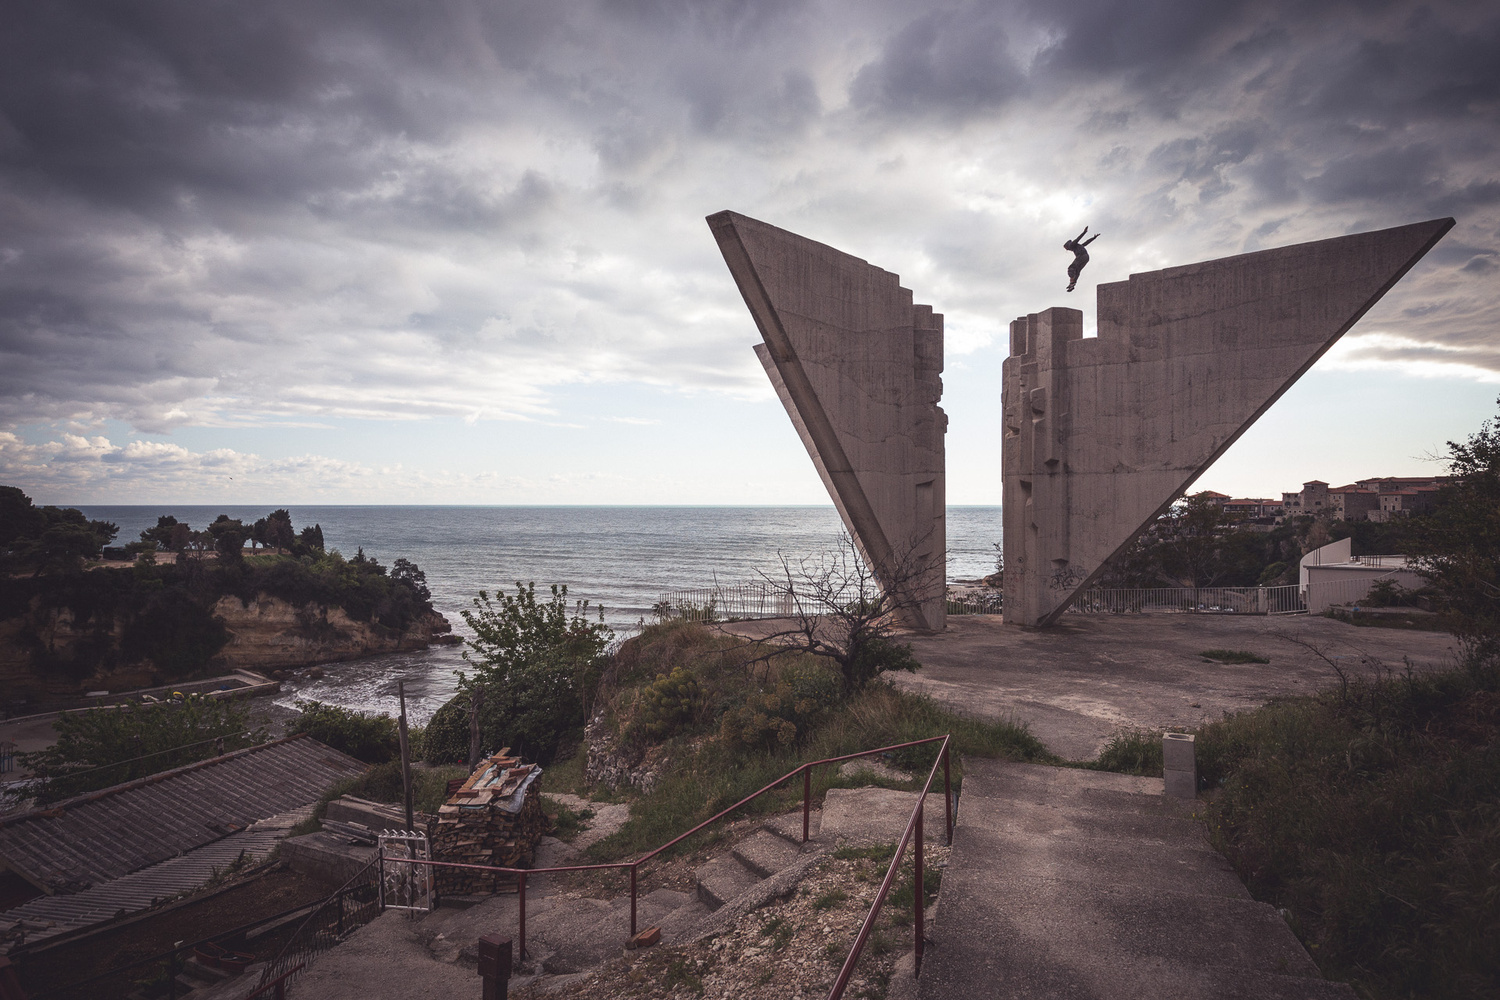 The monument at Ulcinj by Andy Day